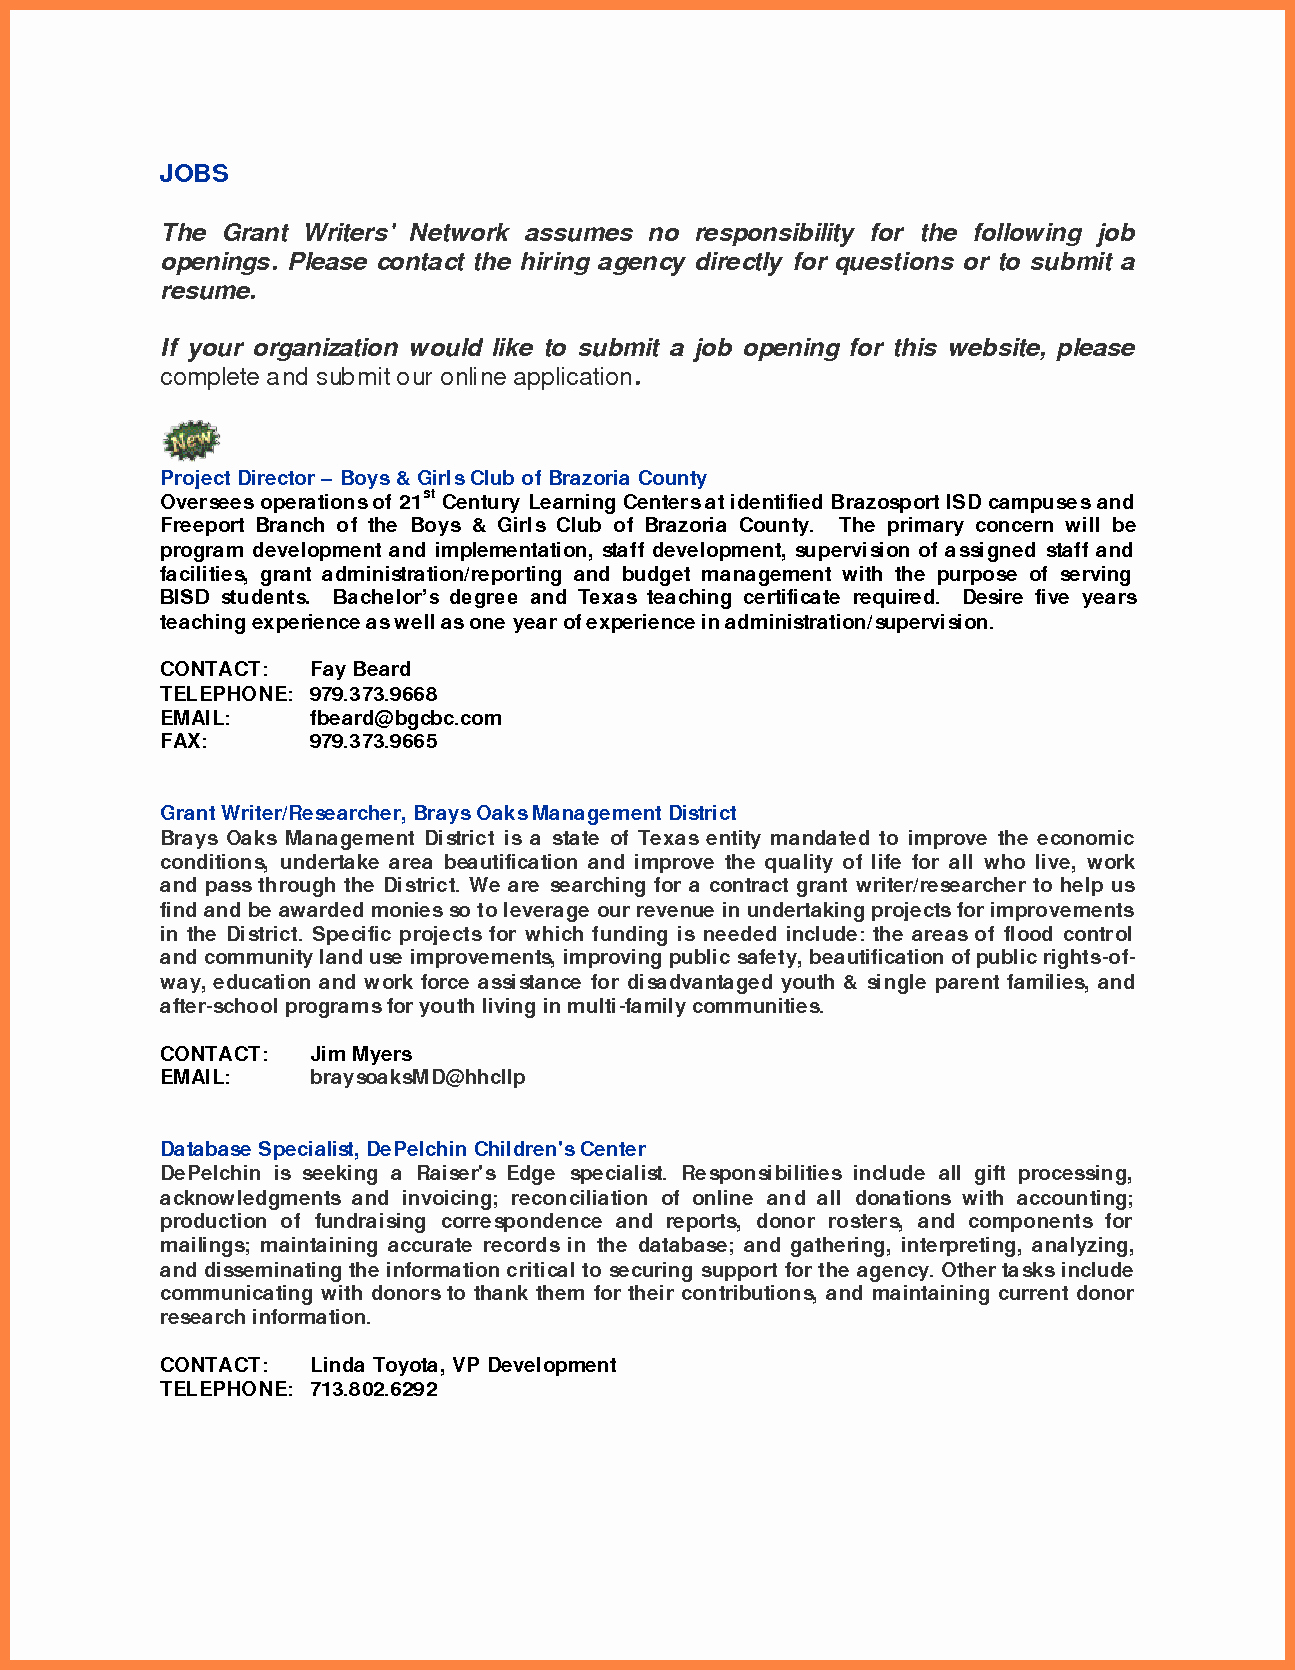 Salary Requirement Sample Letter Lovely 6 Sample Resume with Salary History